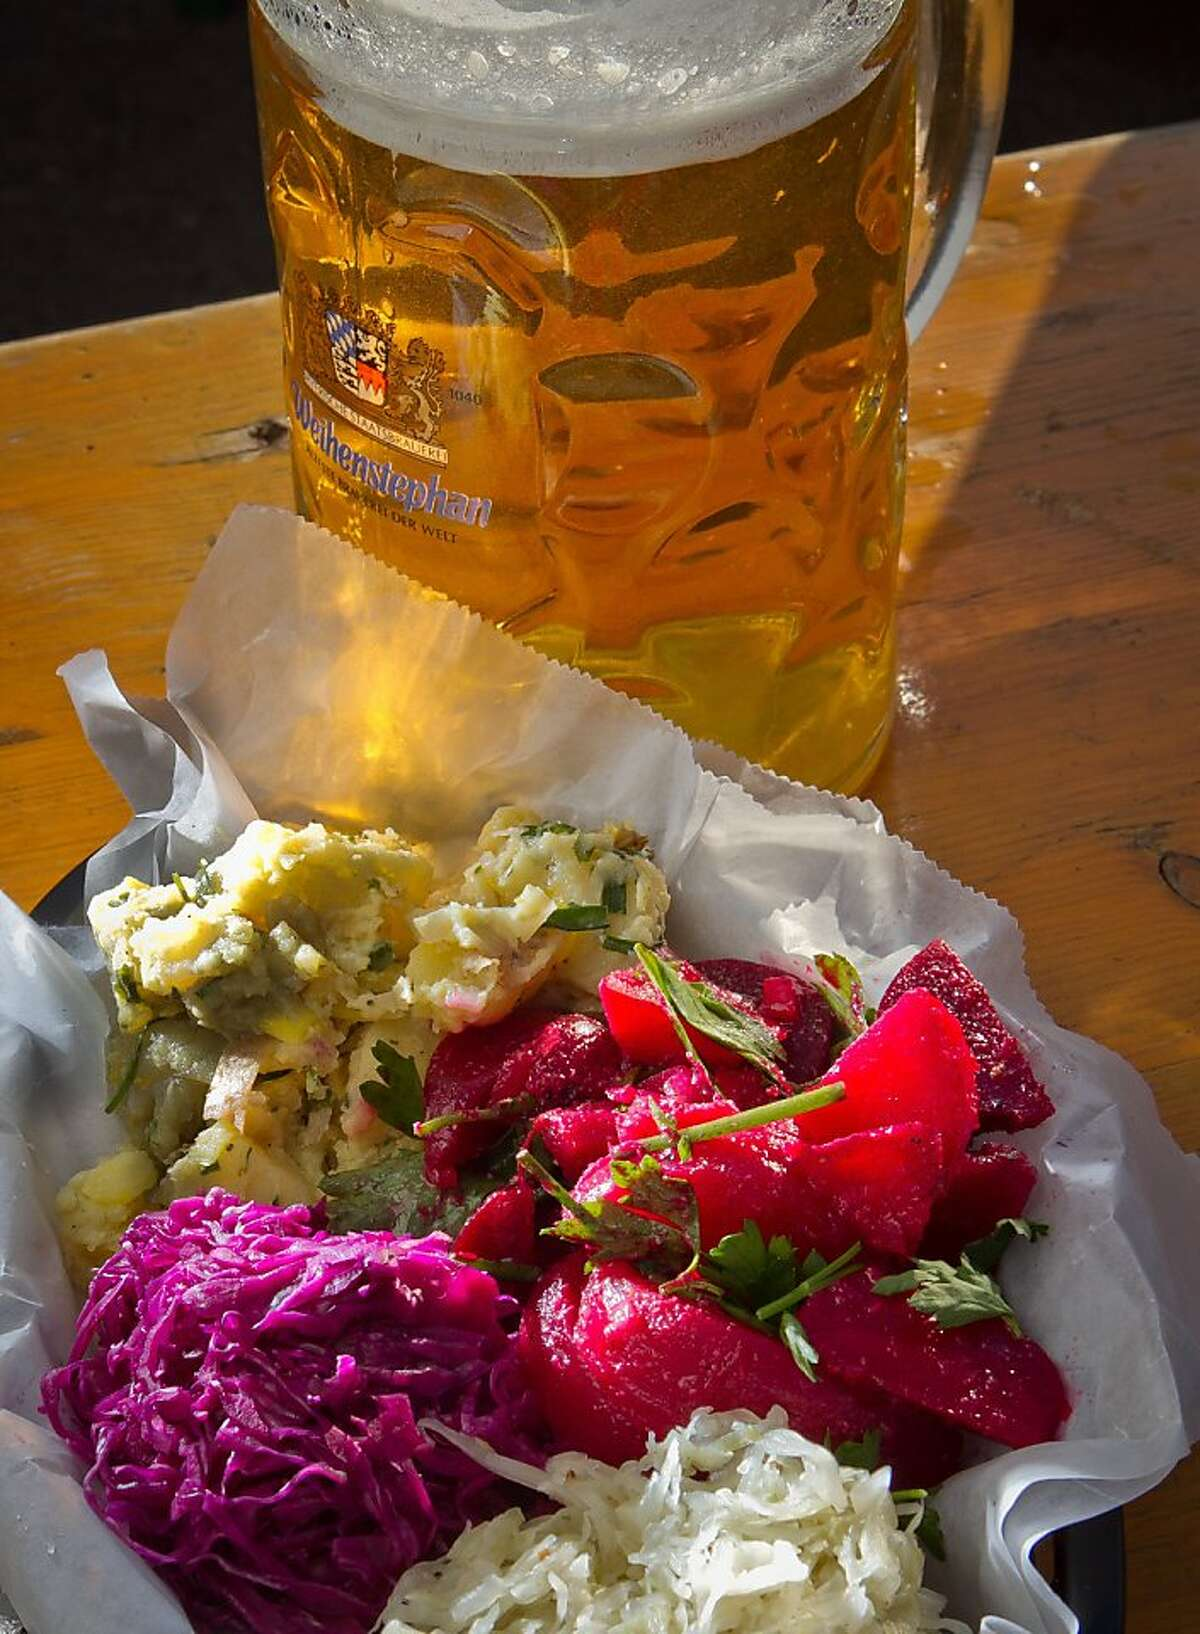 The Salad Plate with a stein of beer at the Biergarten Restaurant in San Francisco, Calif., is seen on Sunday, December 4th, 2011.